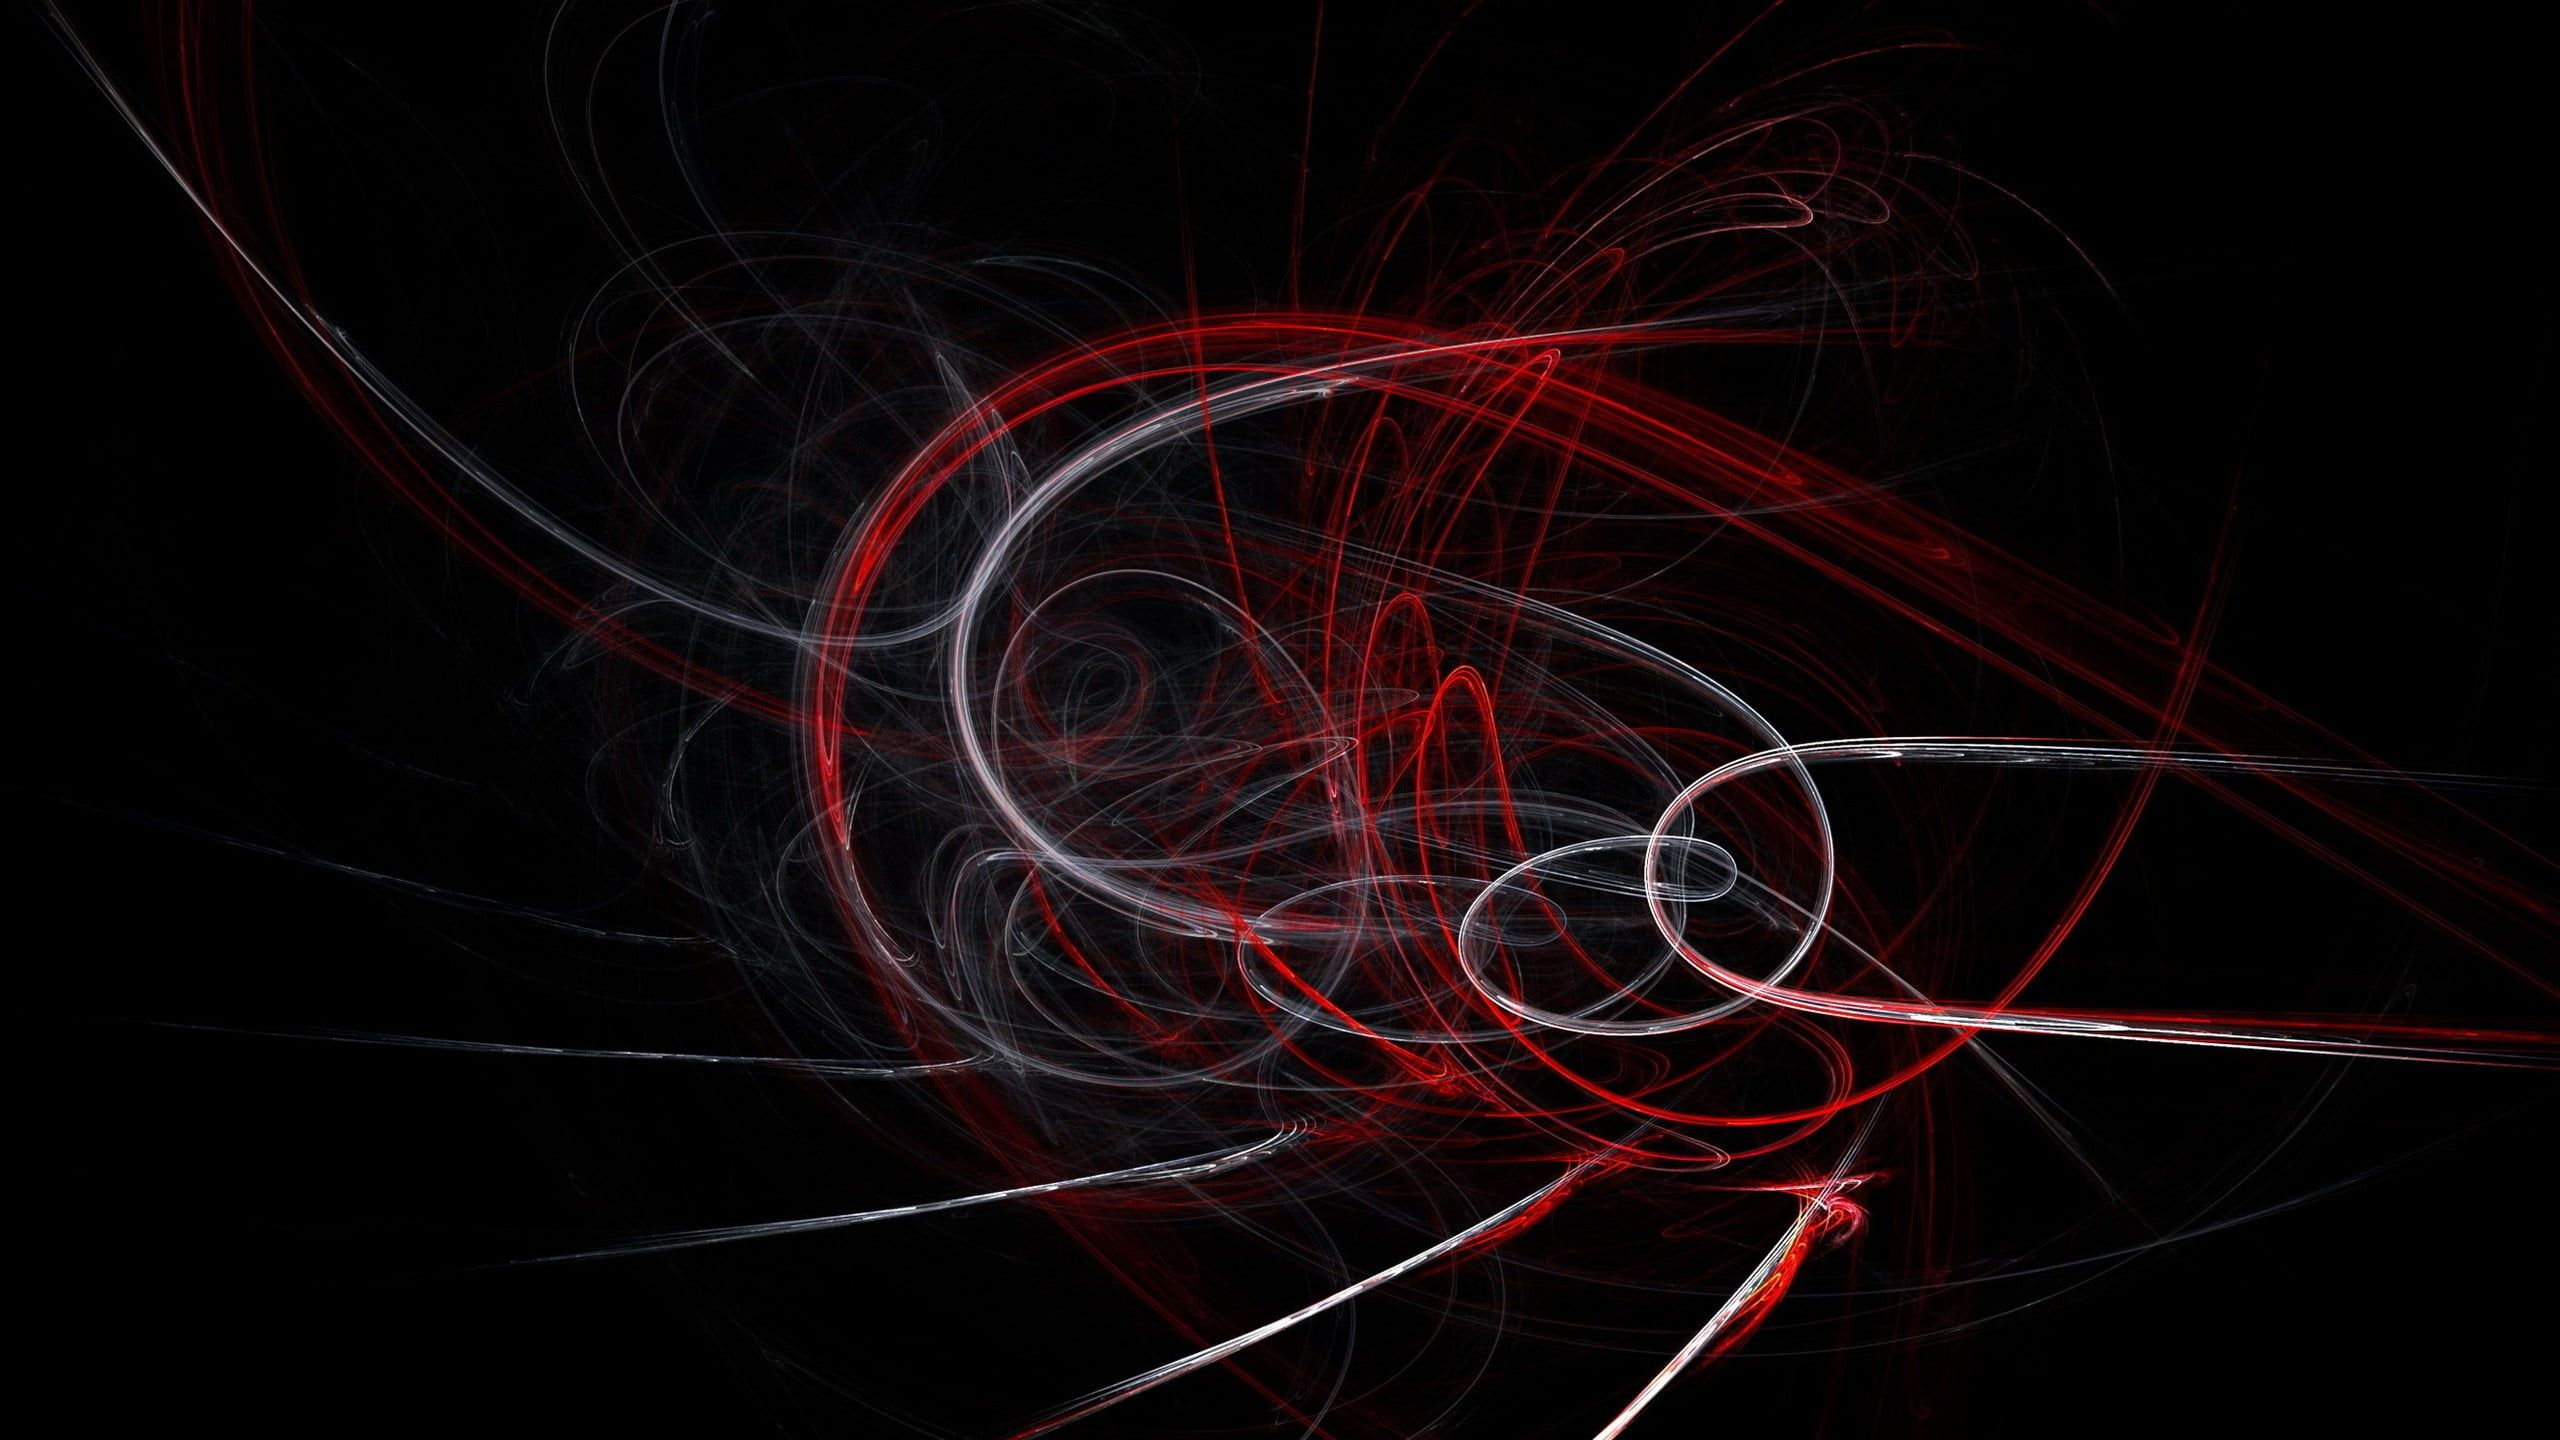 White Red And Black Abstract Digital Wallpaper Abstract Shapes Dark Lines Digital Art 2k Wallpaper Hdwallpap Digital Wallpaper Black Abstract Abstract